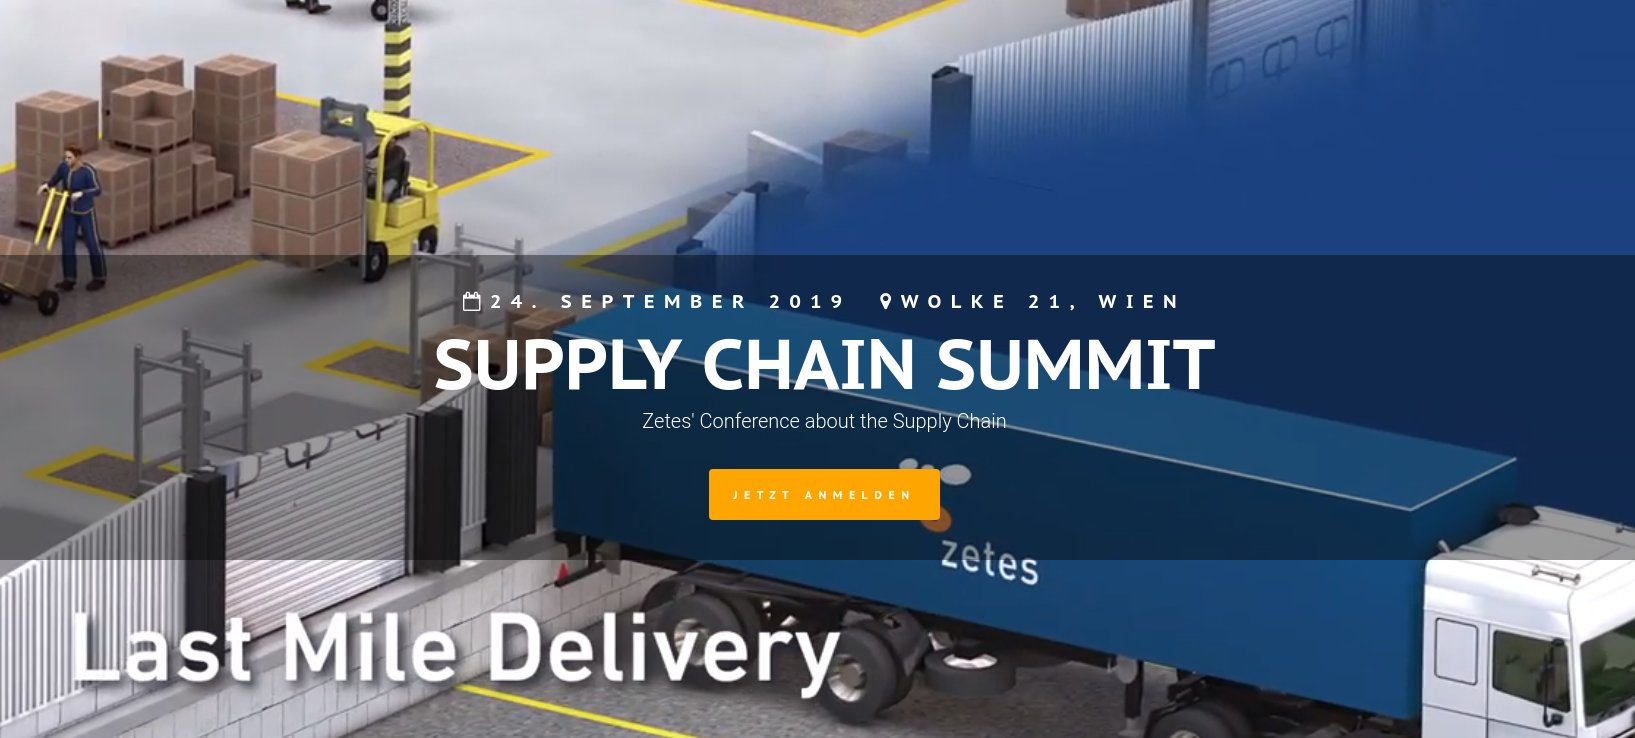 Zetes Supply Chain Summit 2019 in Wien